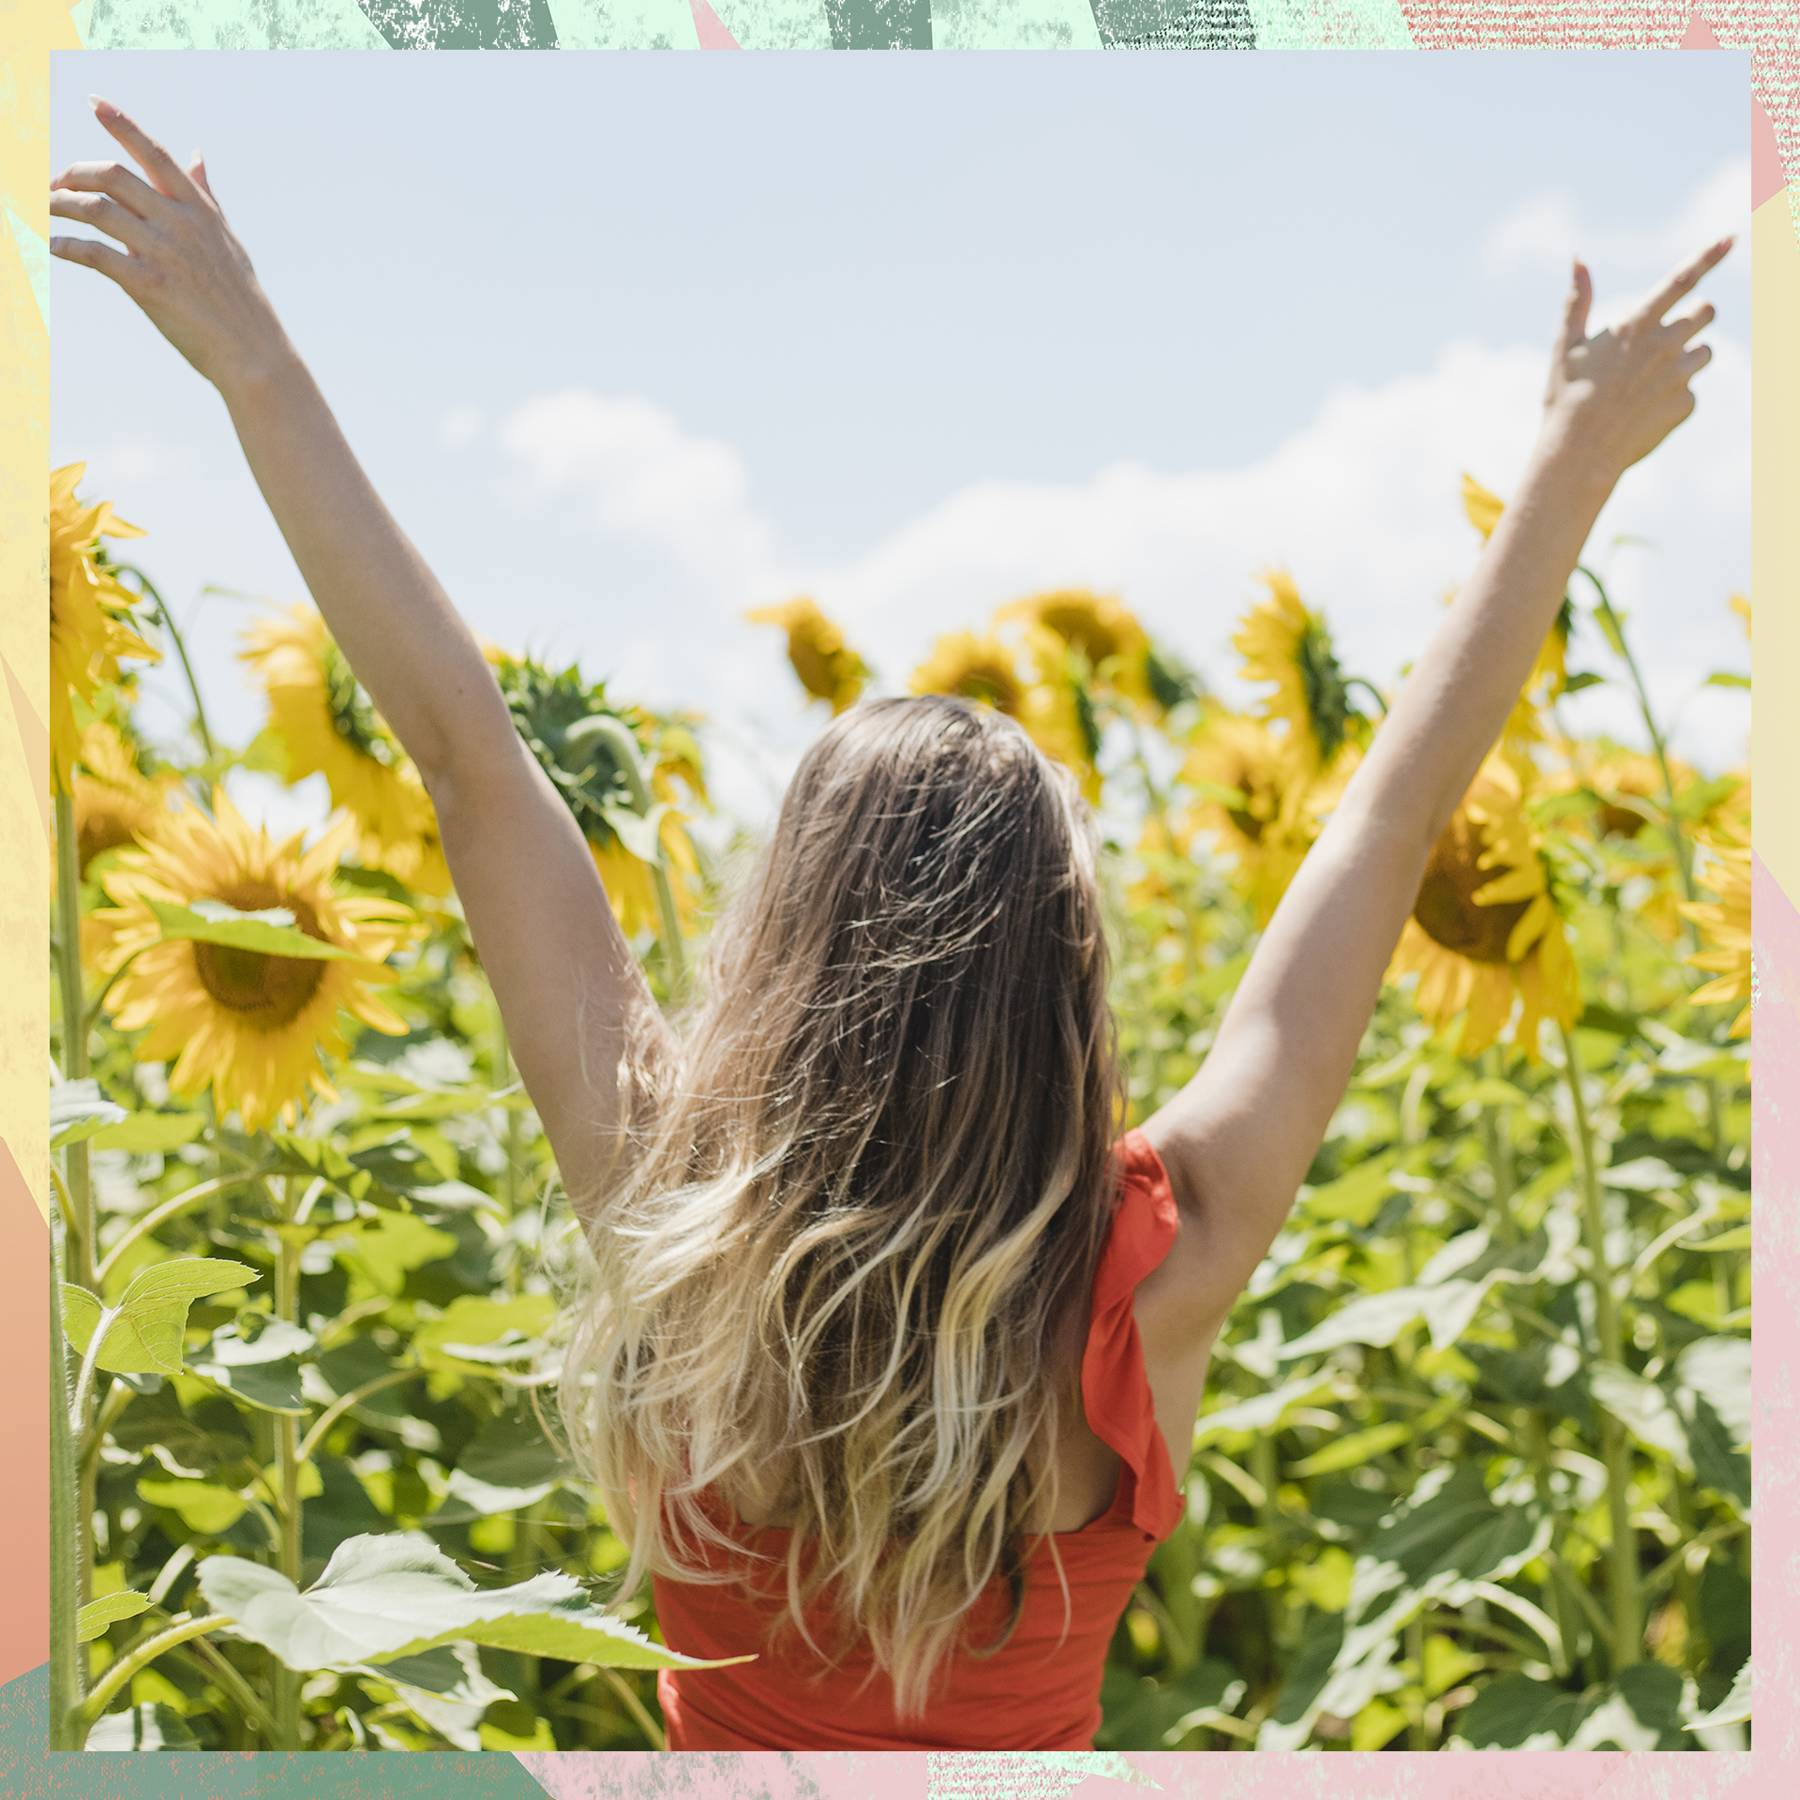 The anti-inflammatory lifestyle will help banish depression and fatigue, boost energy and let you live your best life